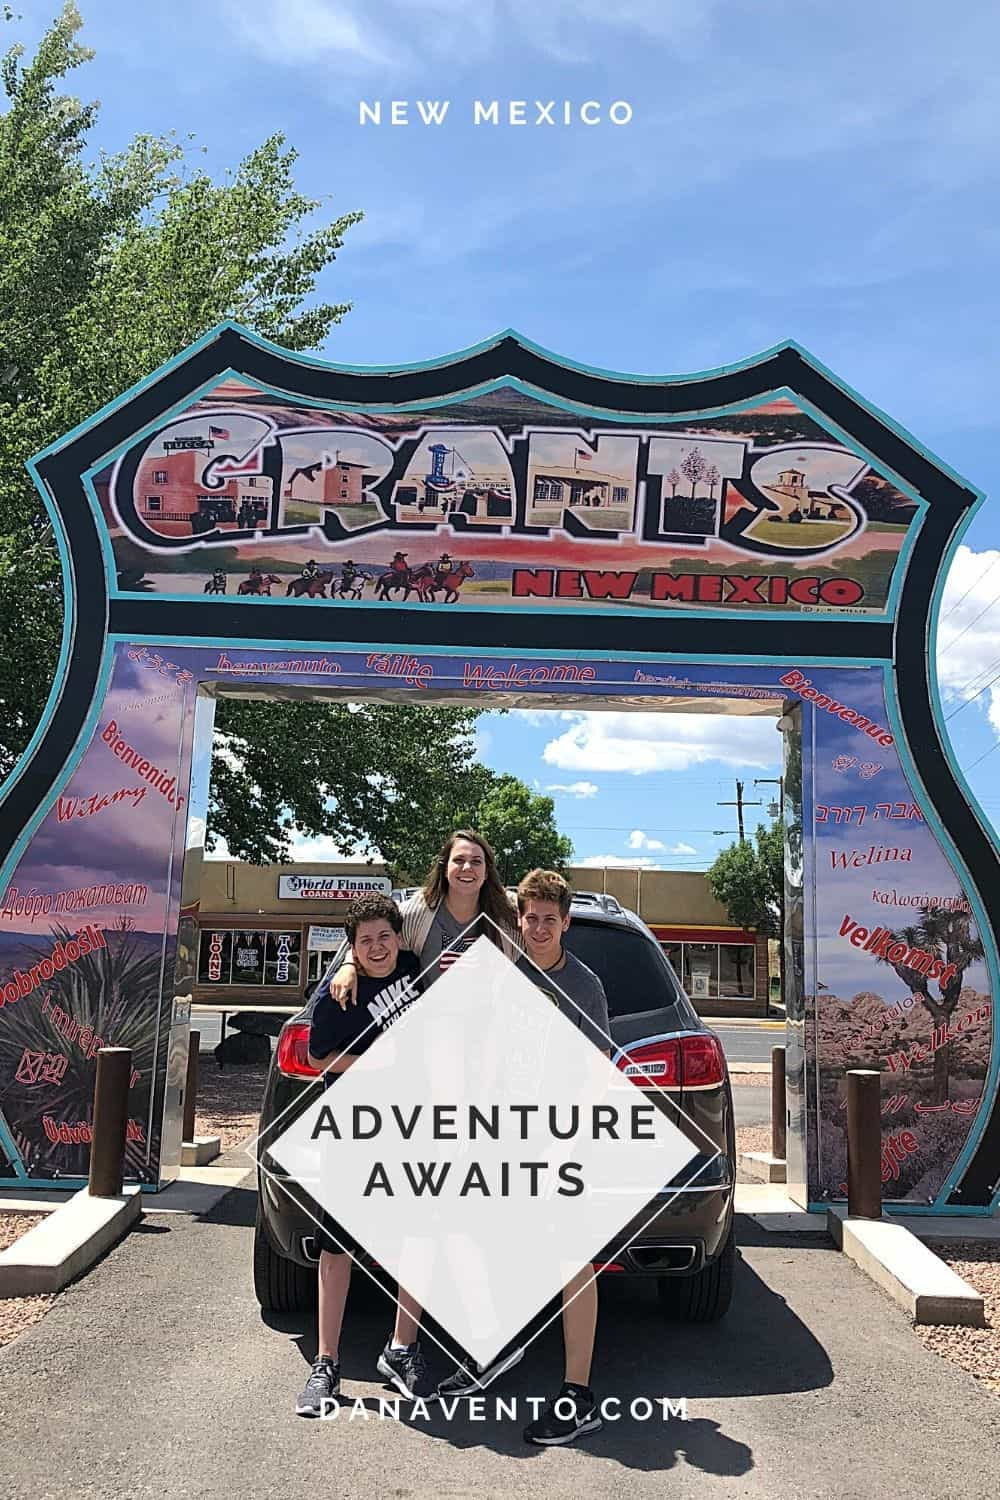 Kids at Route 66. New Mexico Summer Packing List